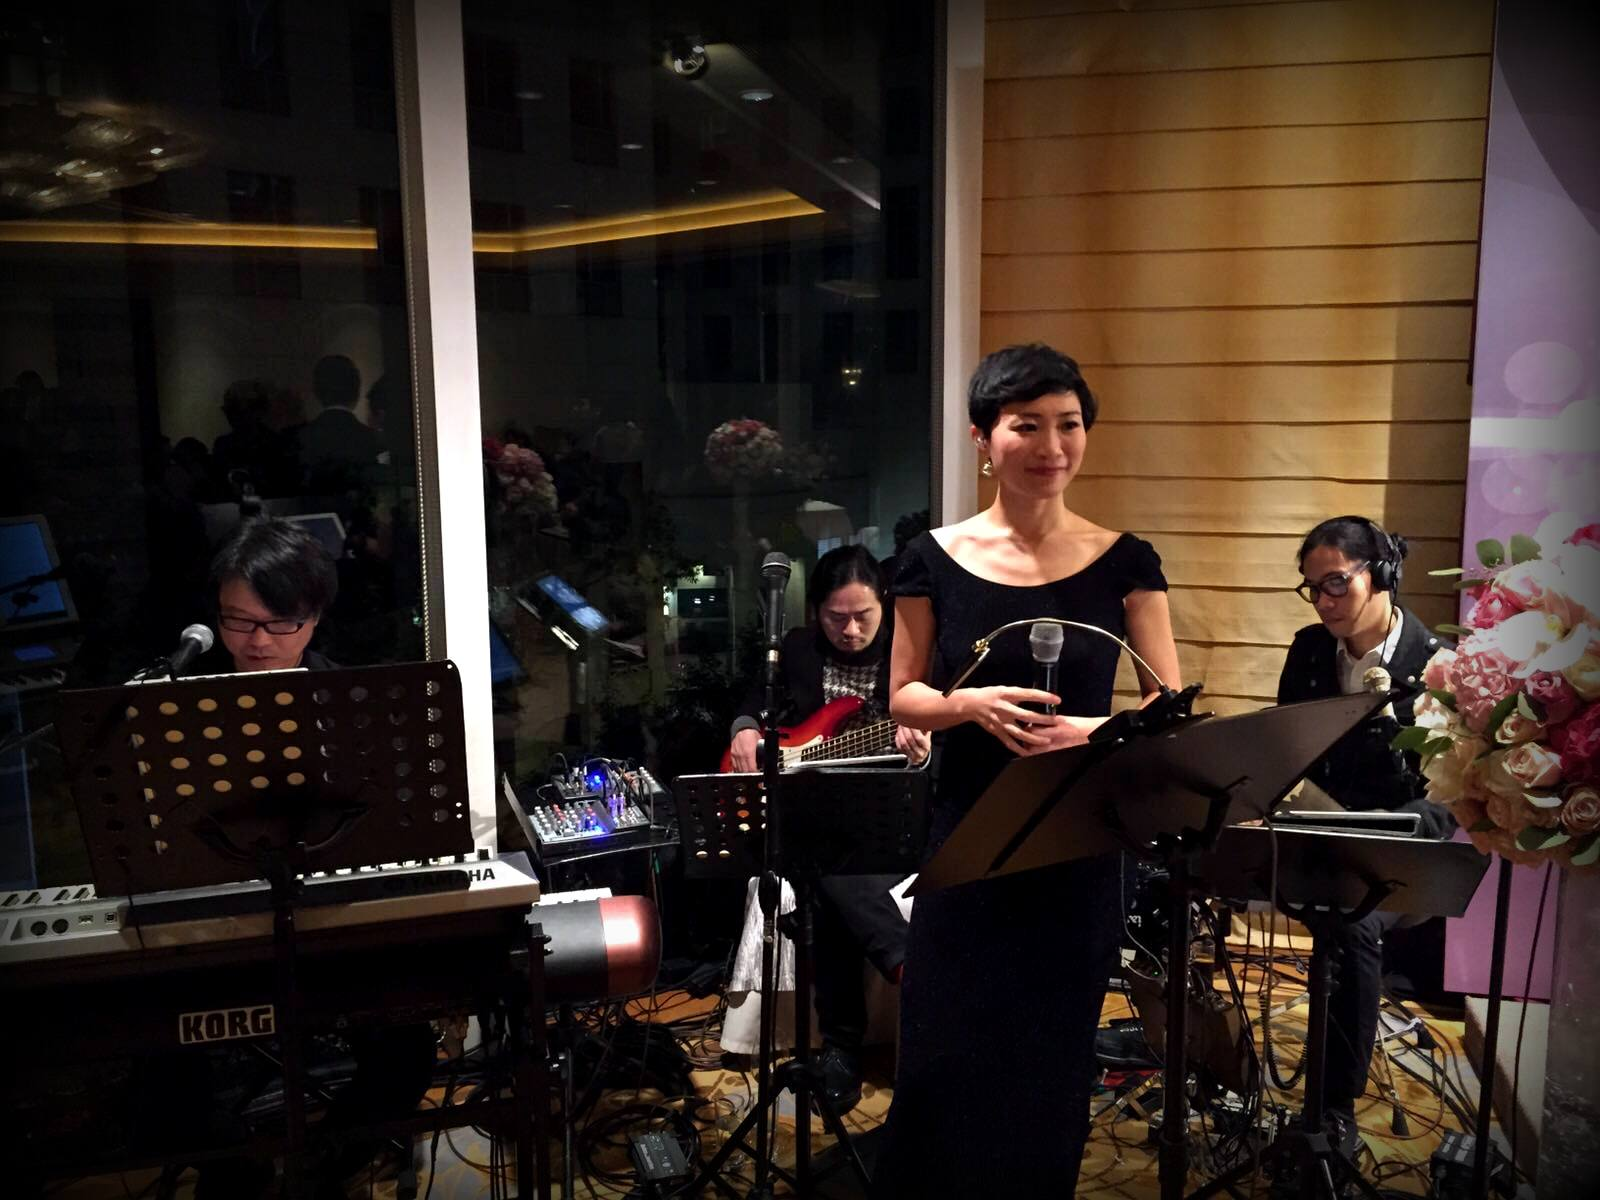 Unison Production Live Music band performance - Wedding in Conrad Hotel (Jan2016)